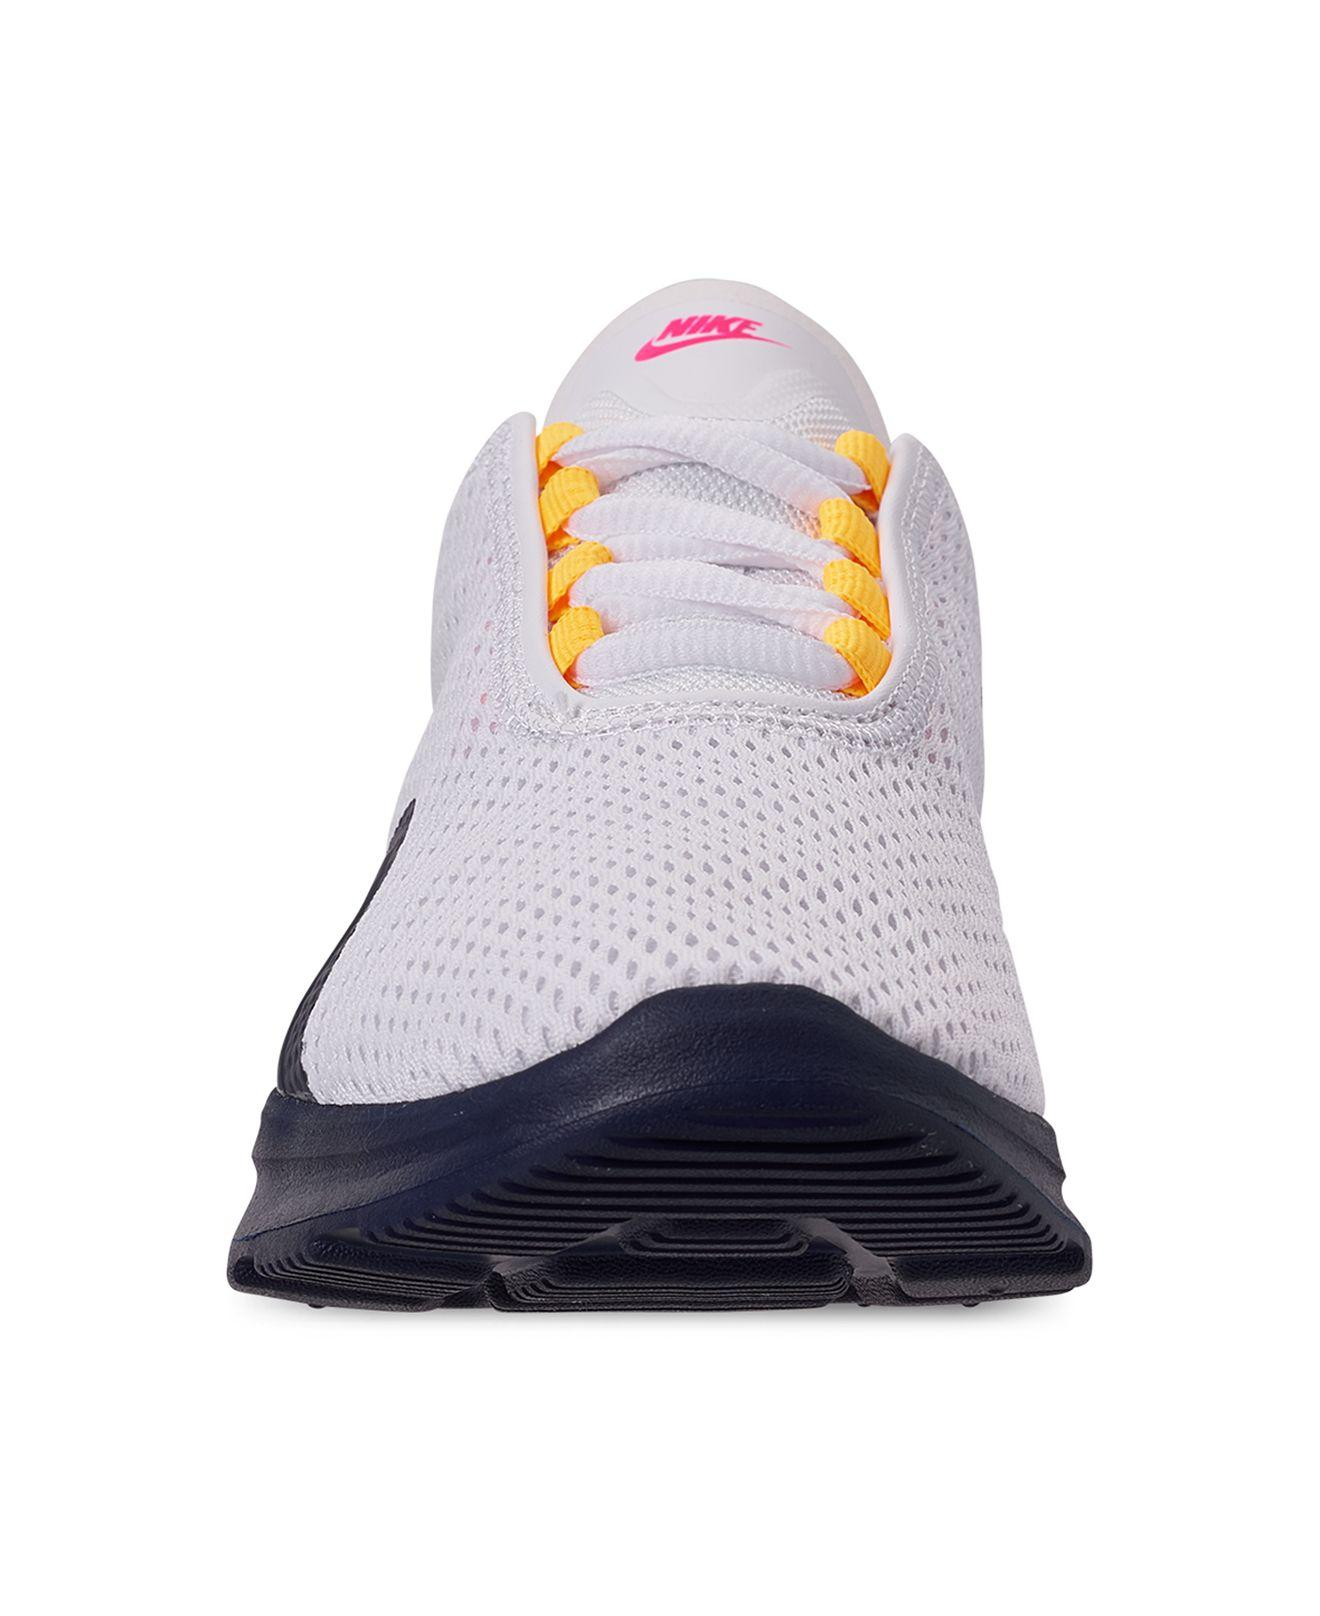 f71ba1caf Nike - Multicolor Air Max Motion 2 Casual Sneakers From Finish Line - Lyst.  View fullscreen